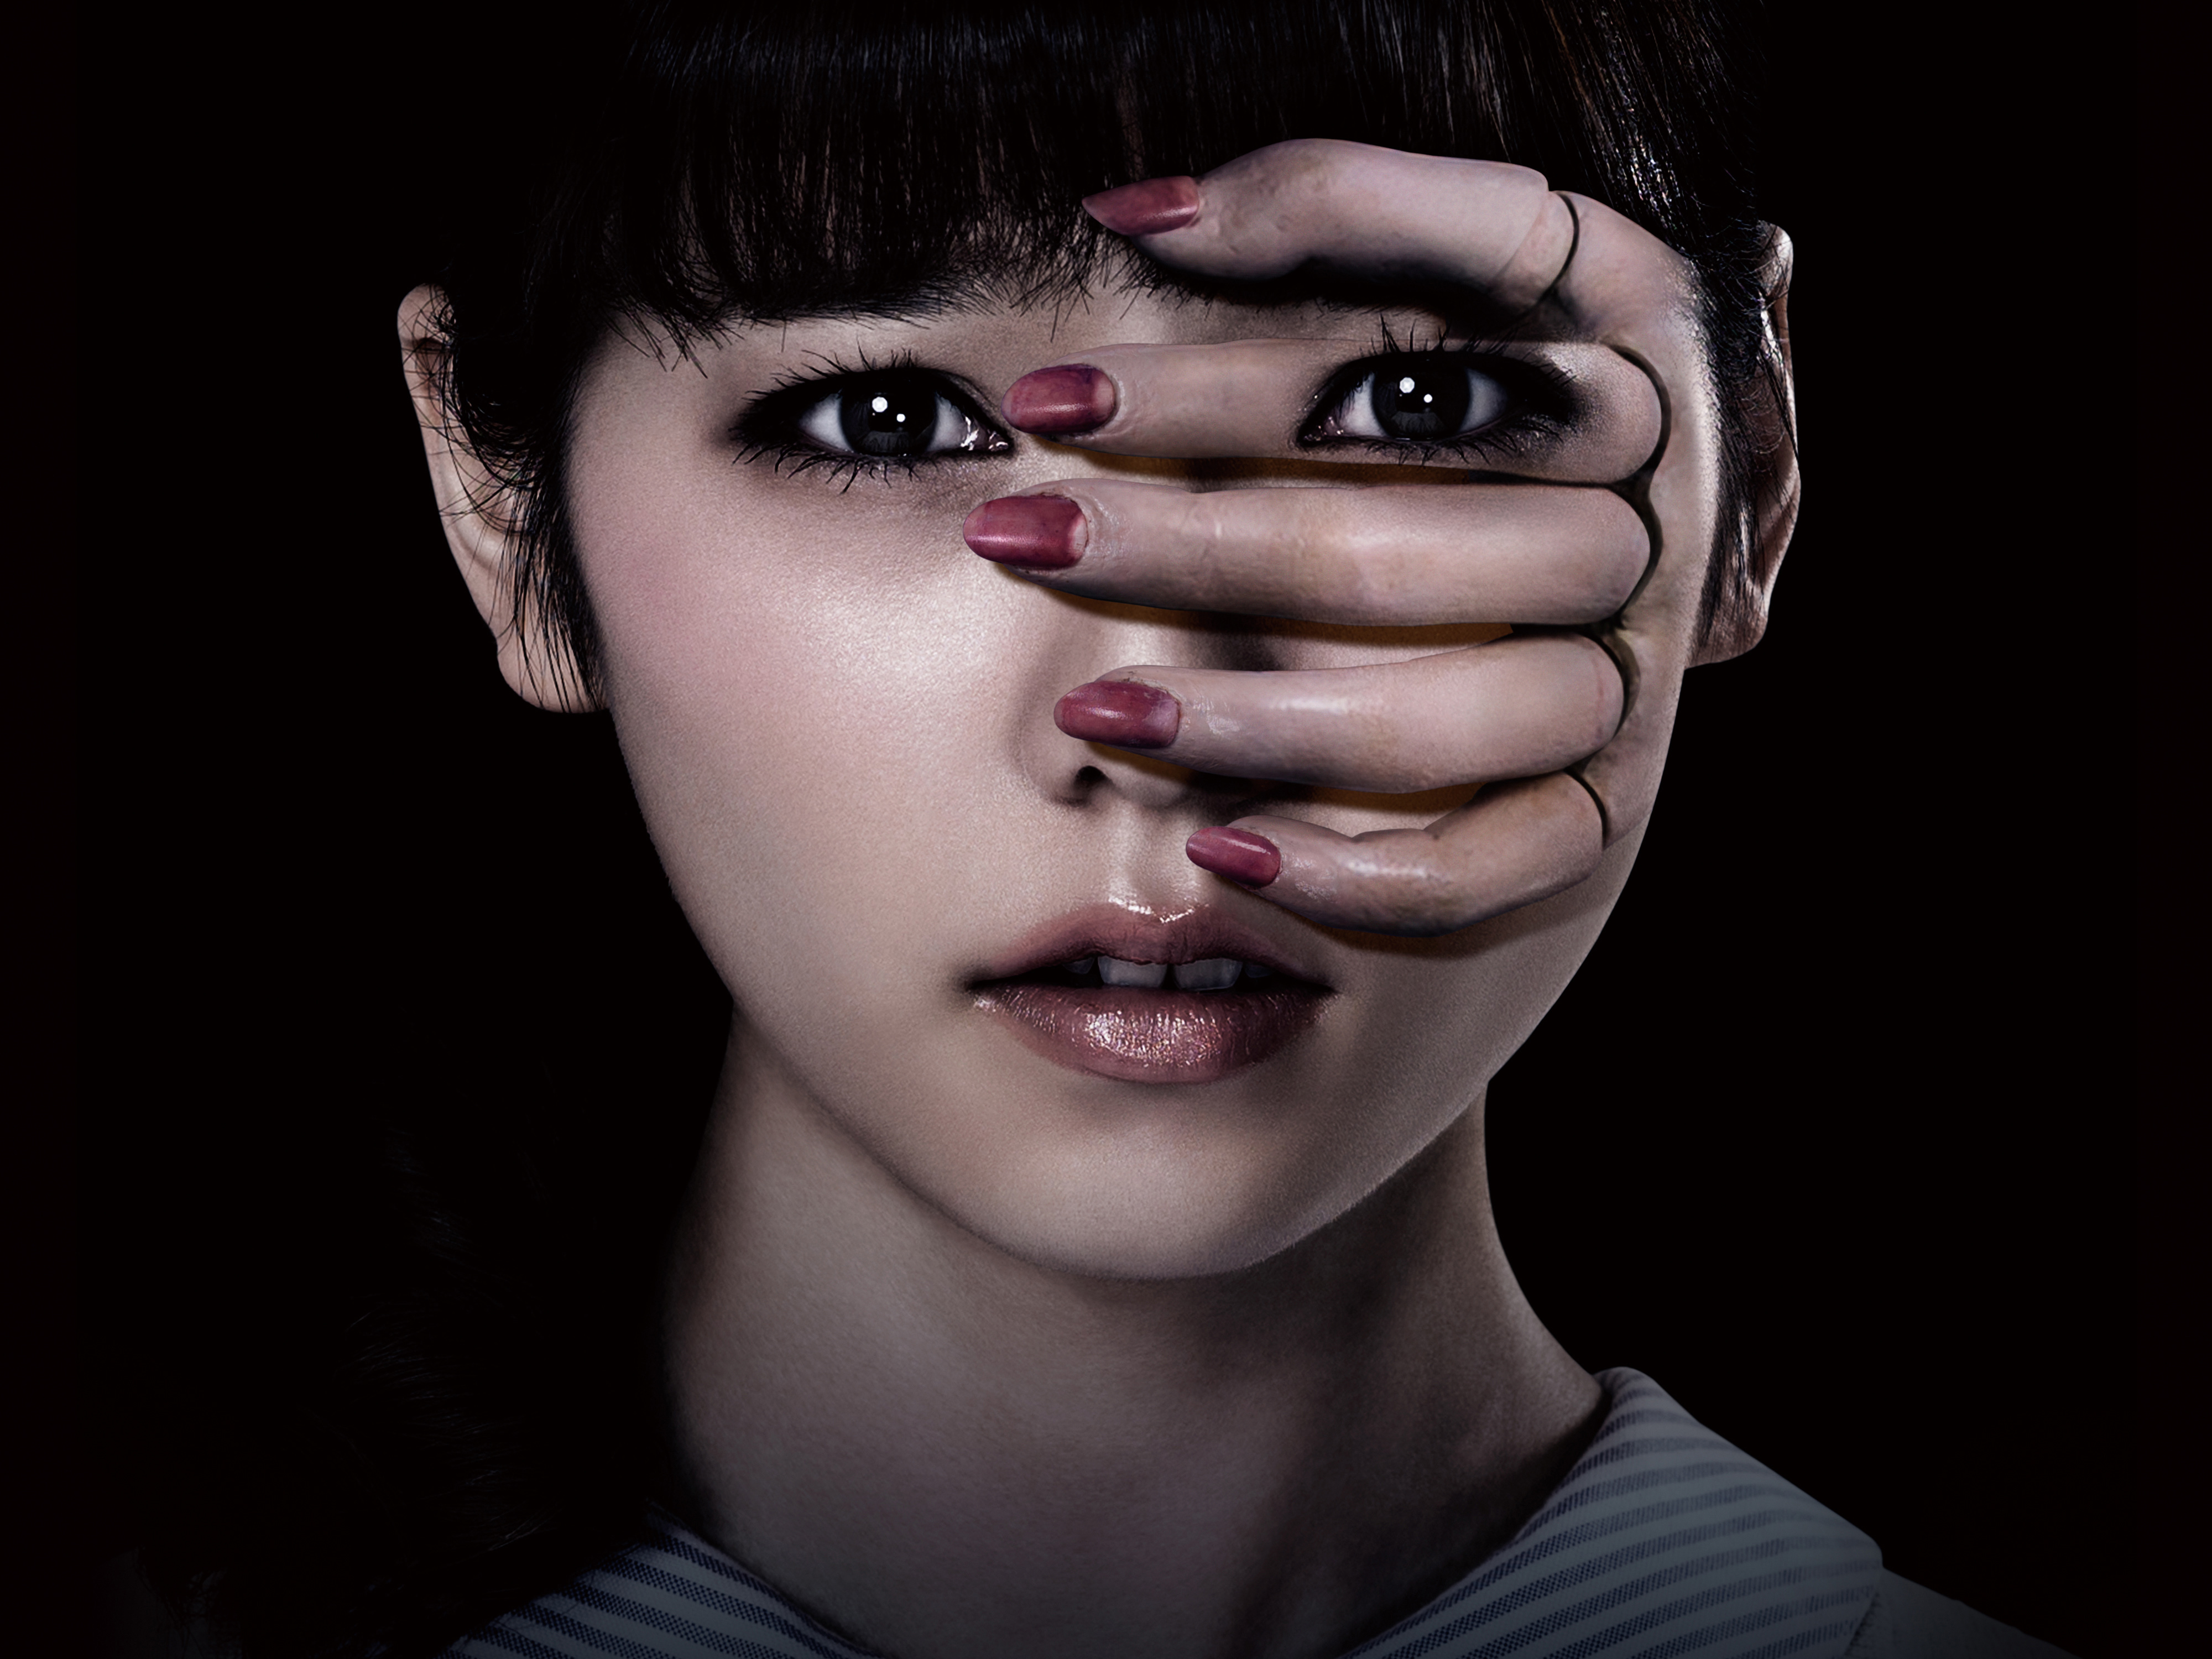 Stage fright: 'Gekijo-rei' ('Ghost Theater'), the new film by Hideo Nakata, one of the godfathers of the so-called J-horror genre, once again pivots on female relationships and fears.   © 2015 'GEKIJOREI' FILM PARTNERS